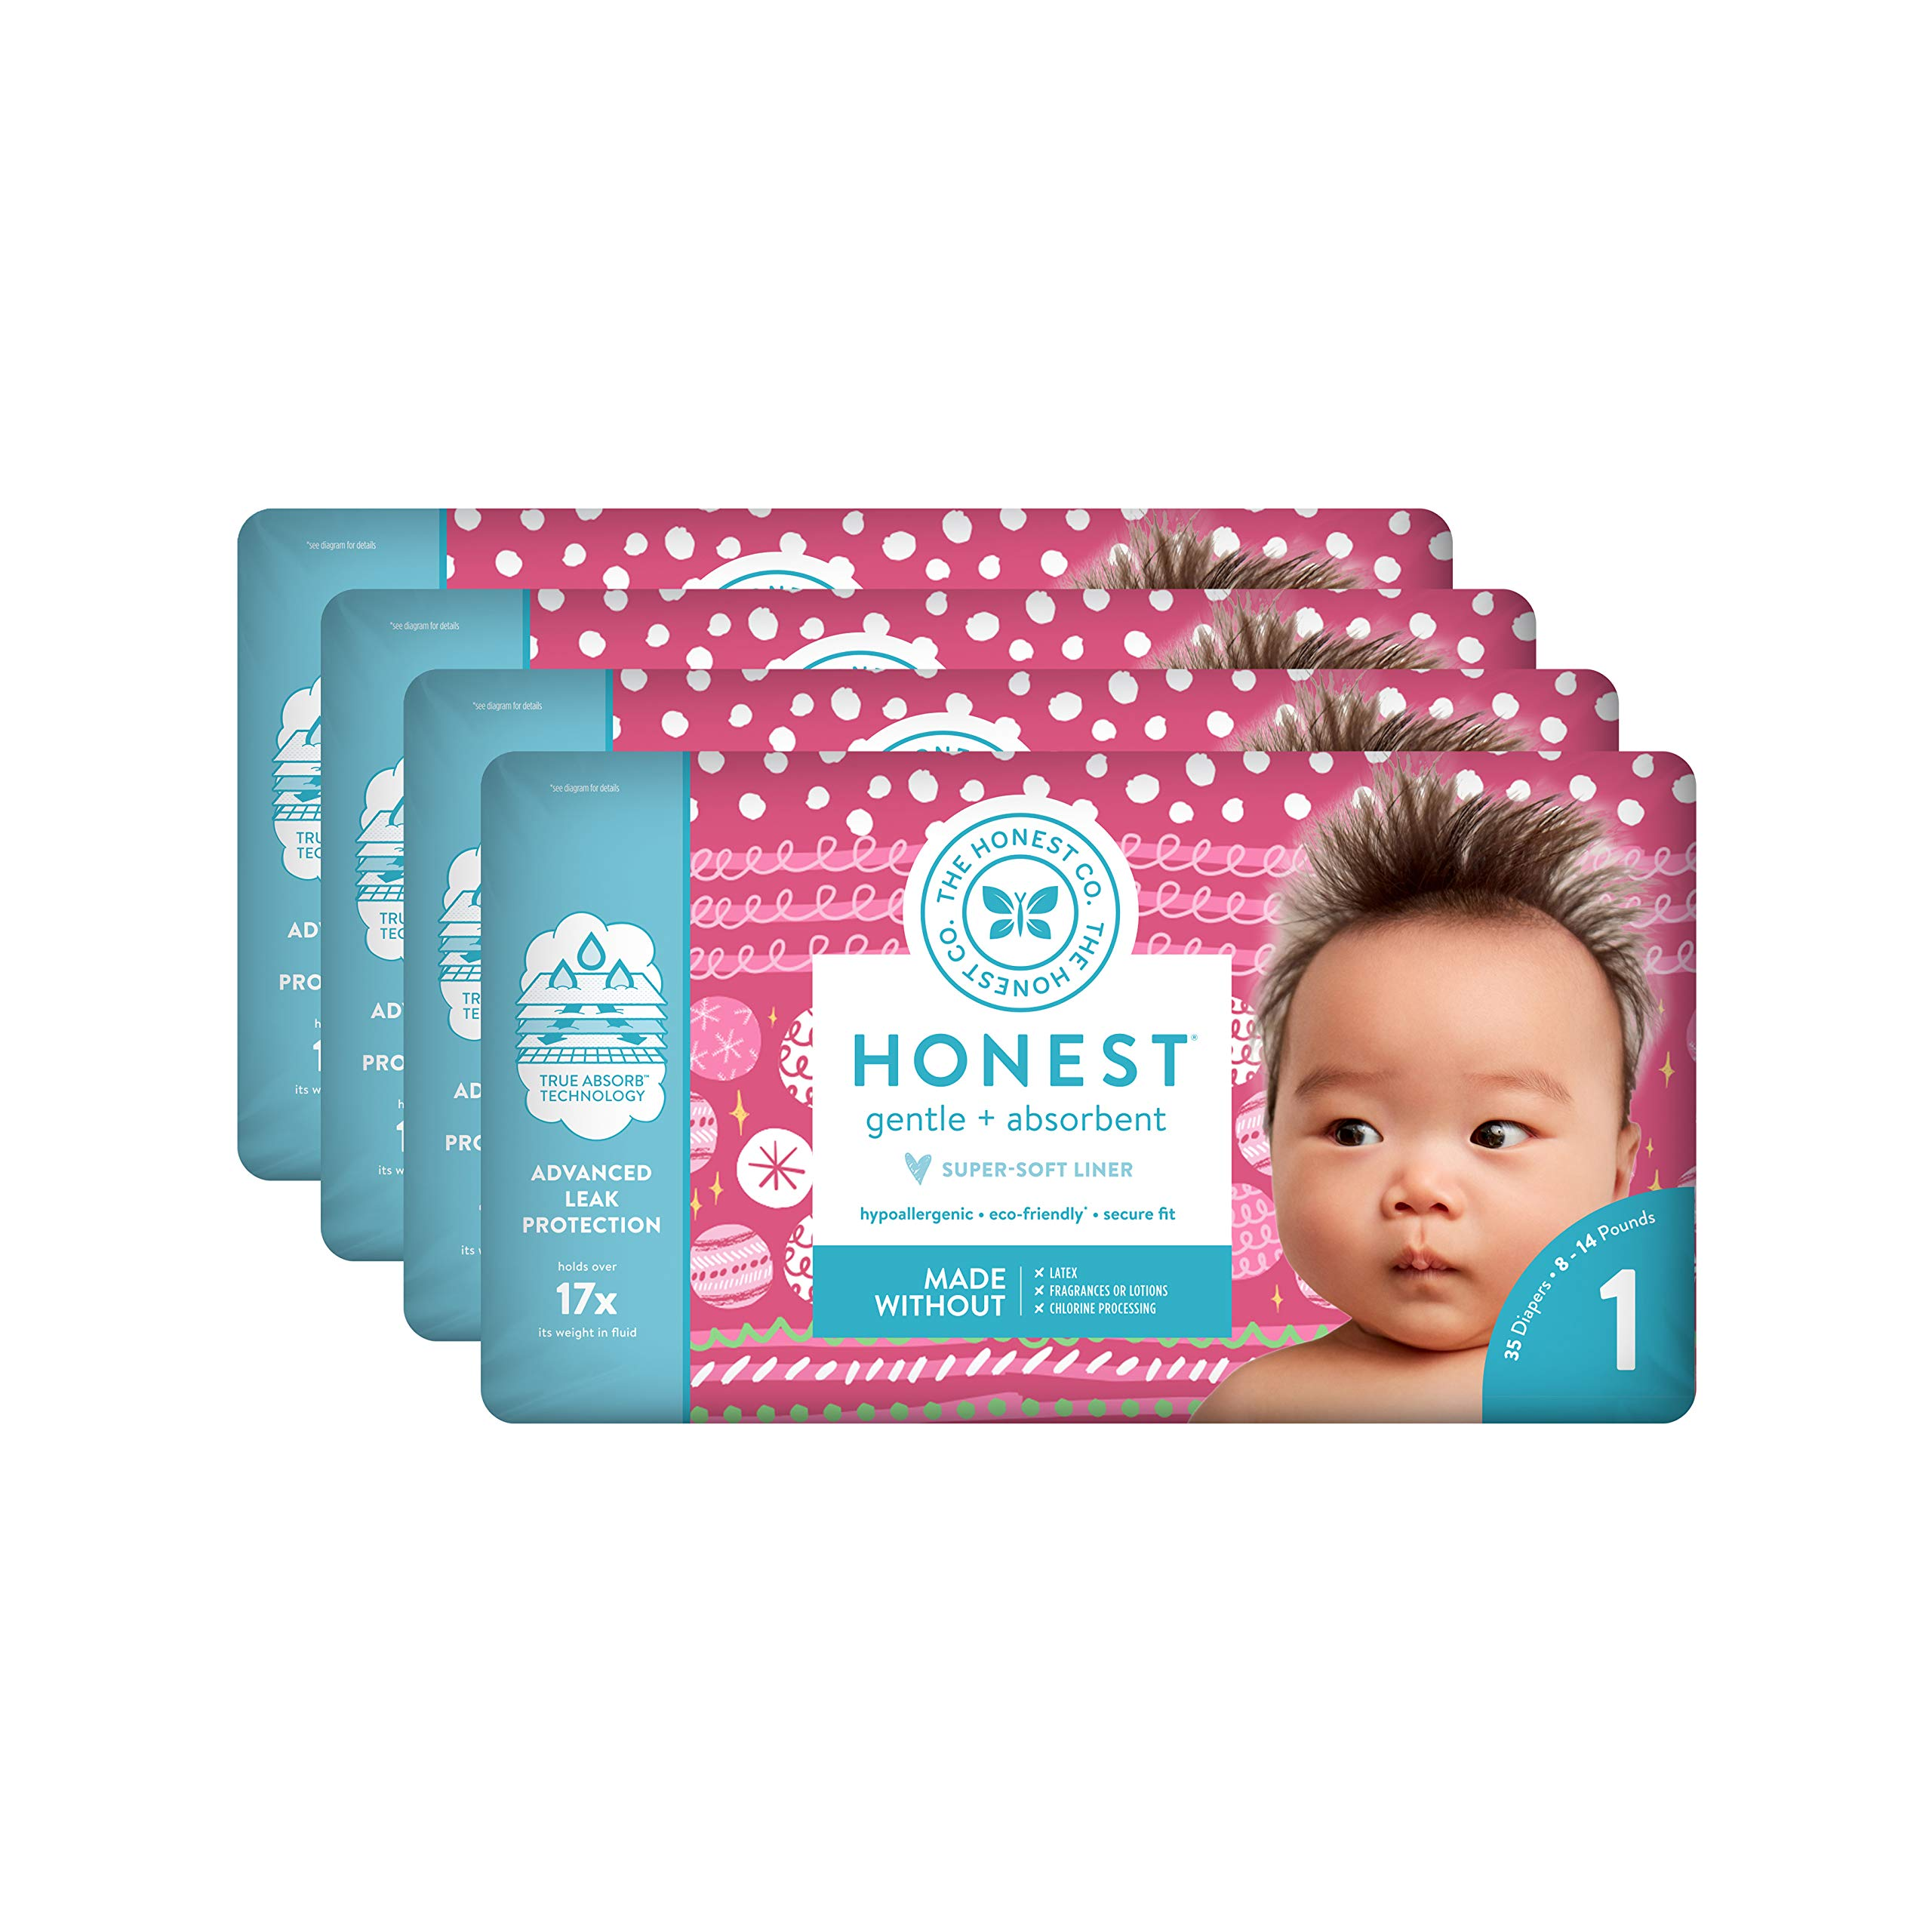 The Honest Company Baby Diapers with True Absorb